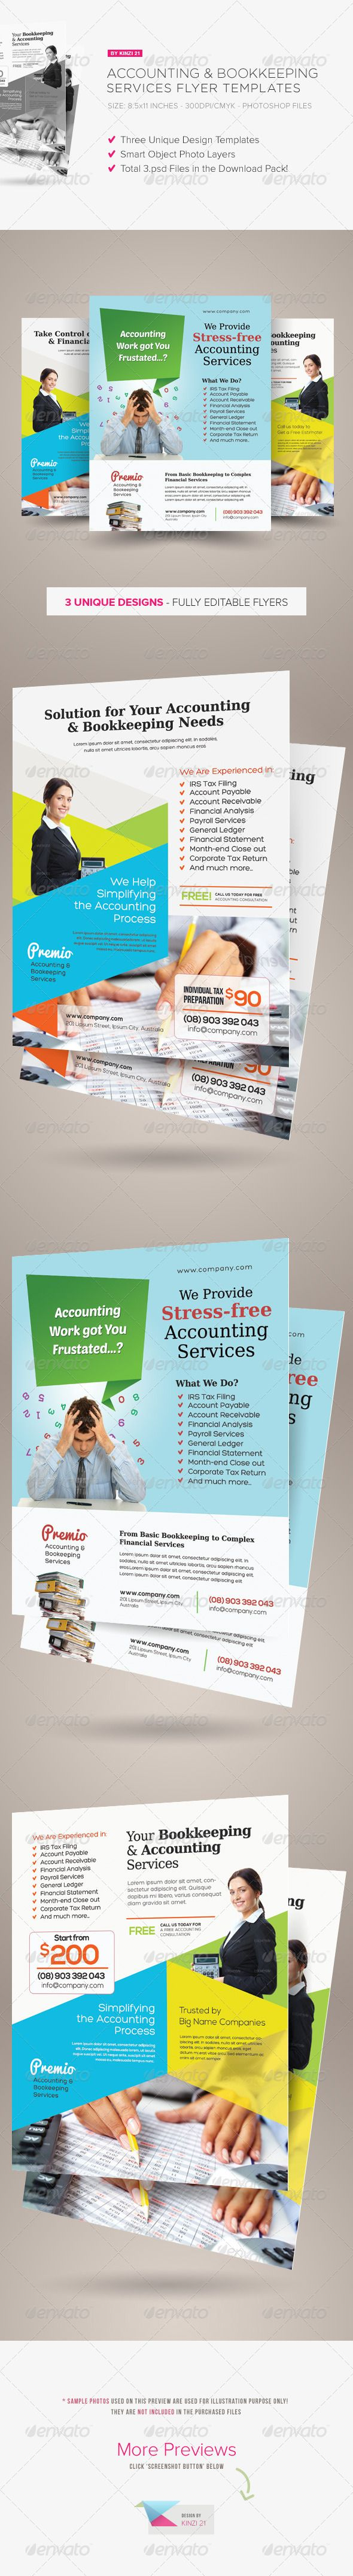 Accounting and Bookkeeping Services Flyers are design templates created for sale on Graphic River. More info of the templates and how to get the sourcefiles can be found on this page: http://graphicriver.net/item/accounting-and-bookkeeping-services-flyers/6516706?r=kinzi21